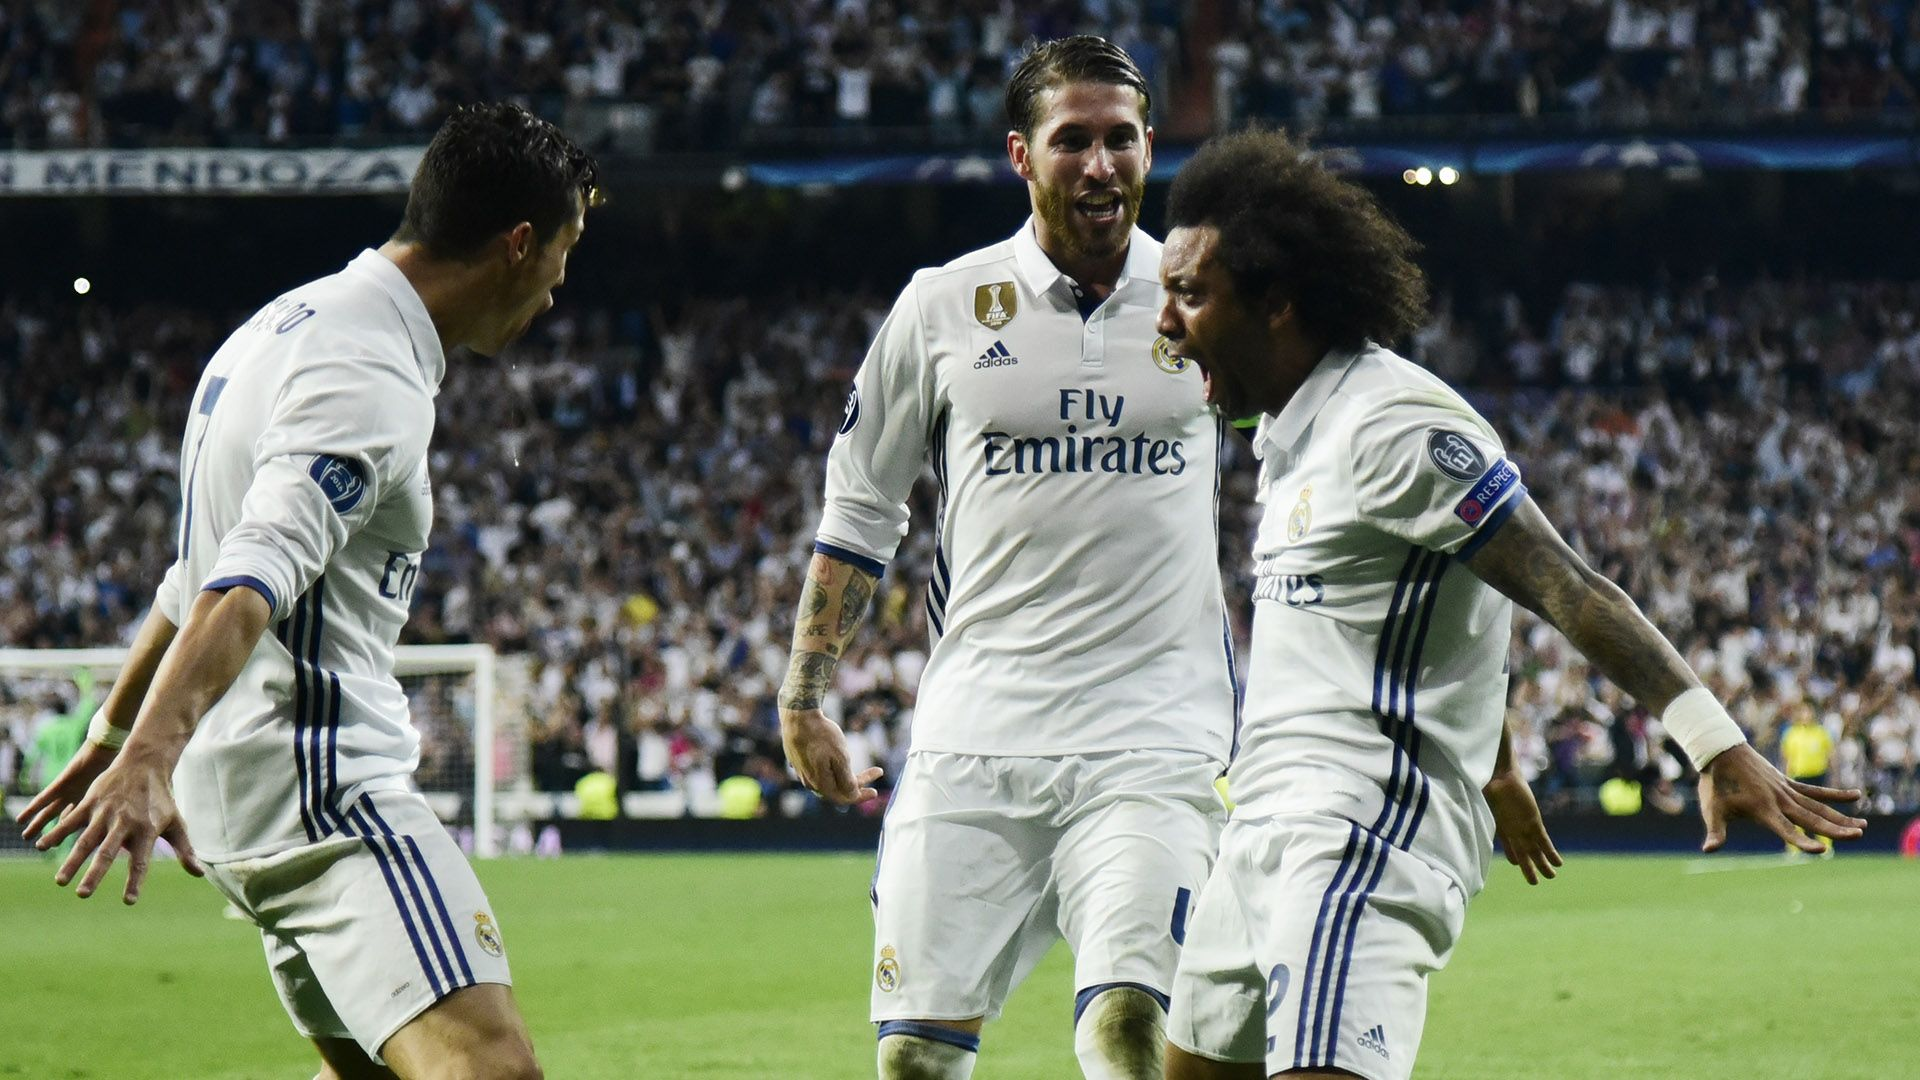 Marcelo Hd Images Get Free Top Quality Marcelo Hd Images For Your Desktop Pc Background Ios Or Android Mobile Phones At Wo Real Madrid Healthy Summer Madrid